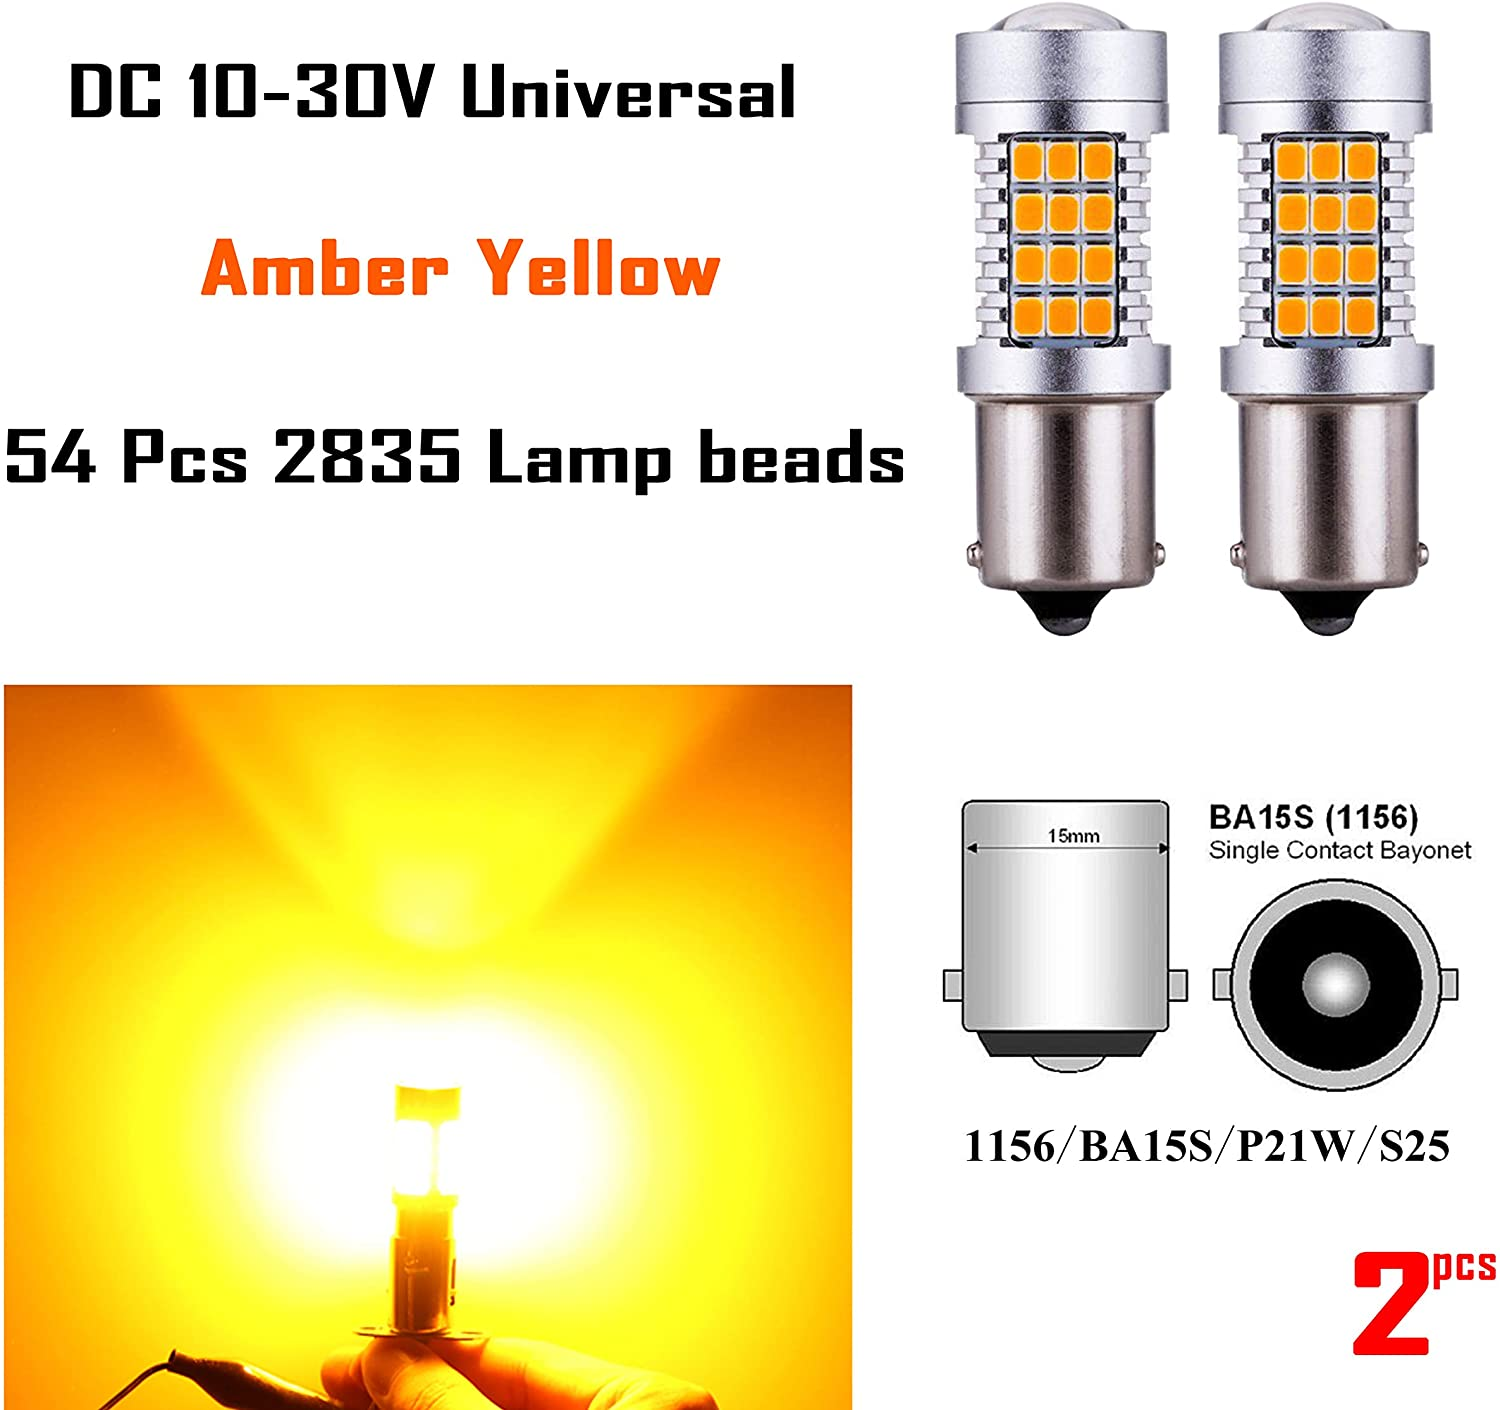 AKKI 2pcs 1156 LED Bulbs with Projector Lens 12V 24V Extremely Super Bright 54-2835 Chipset 1141 1003 1073 BA15S 7506 for Car Turn Signal Blinker Lights, Amber Yellow